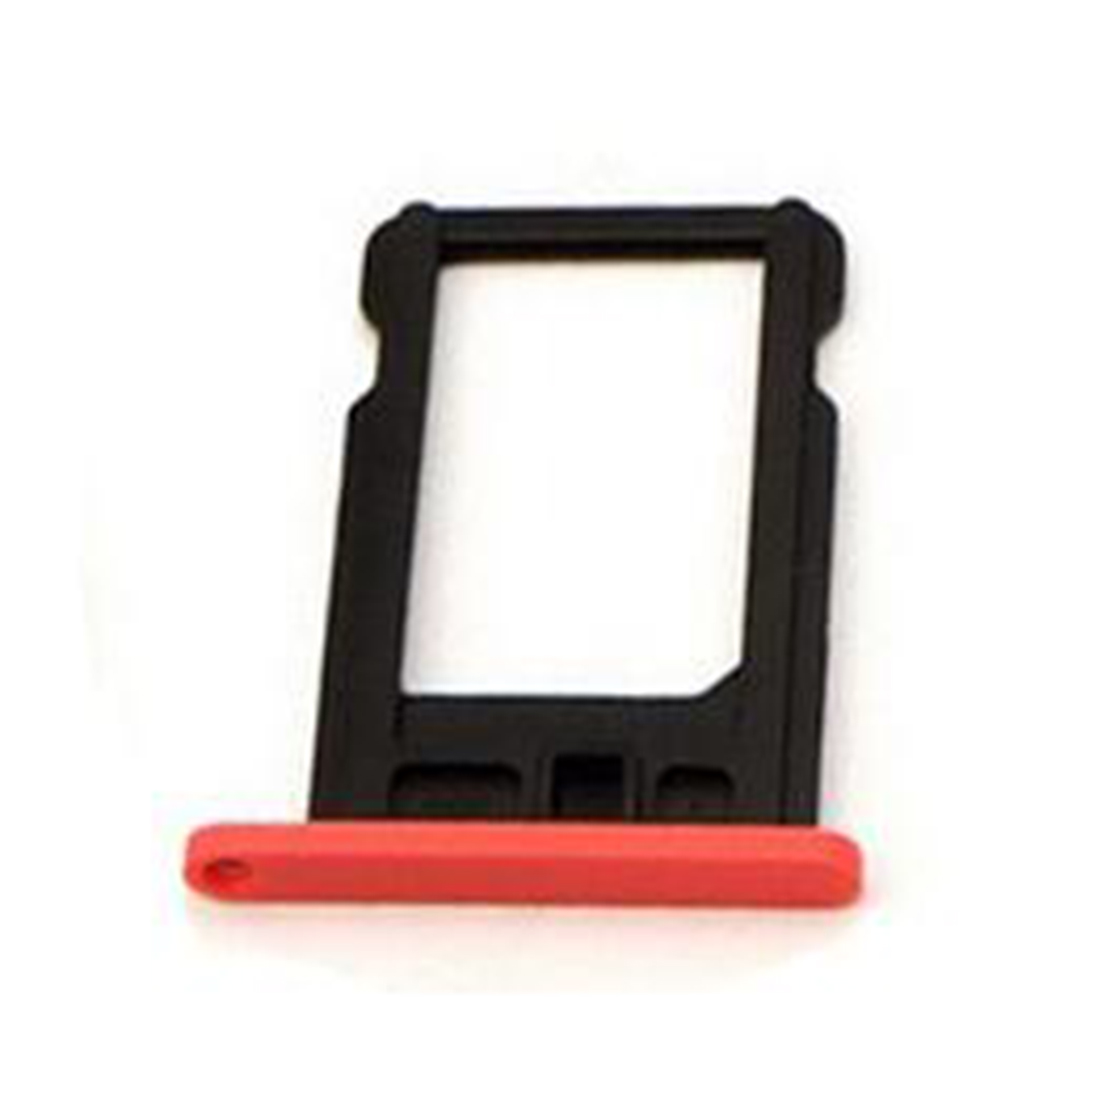 Etmakit 2017 High Qunity SIM Card Tray Holder Slot Replacement Adapter for iPhone 5C Replacement Tools